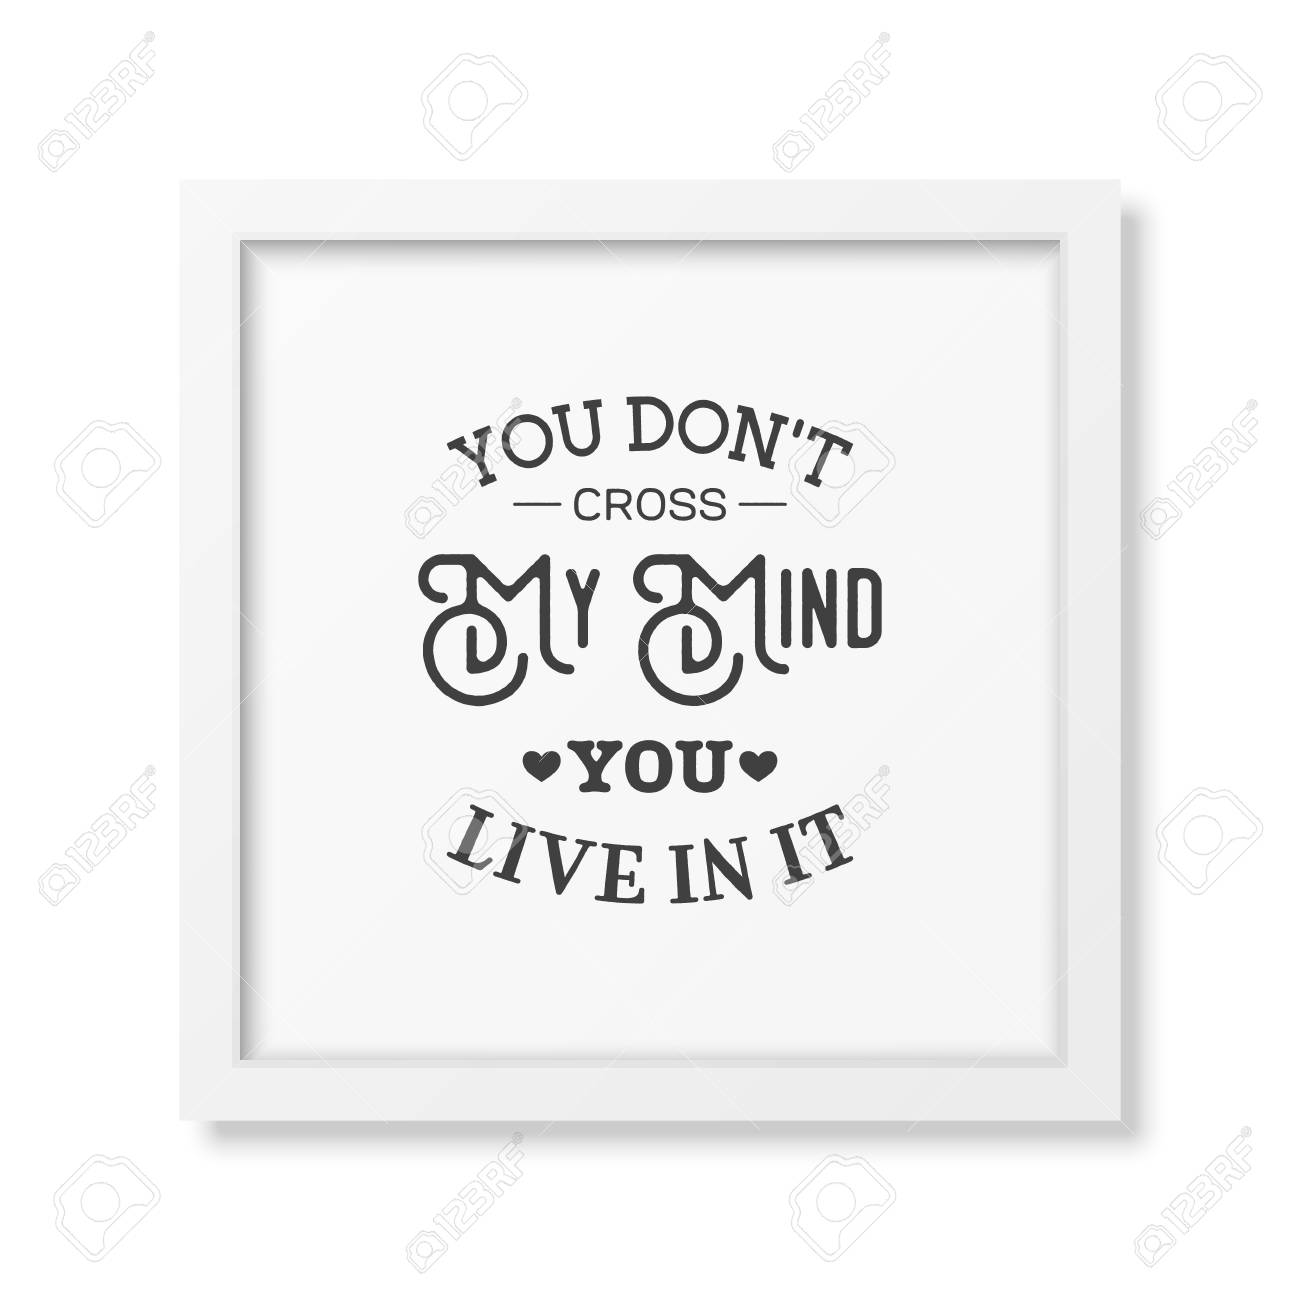 You Don T Cross My Mind You Live In It - Quote Typographical ...